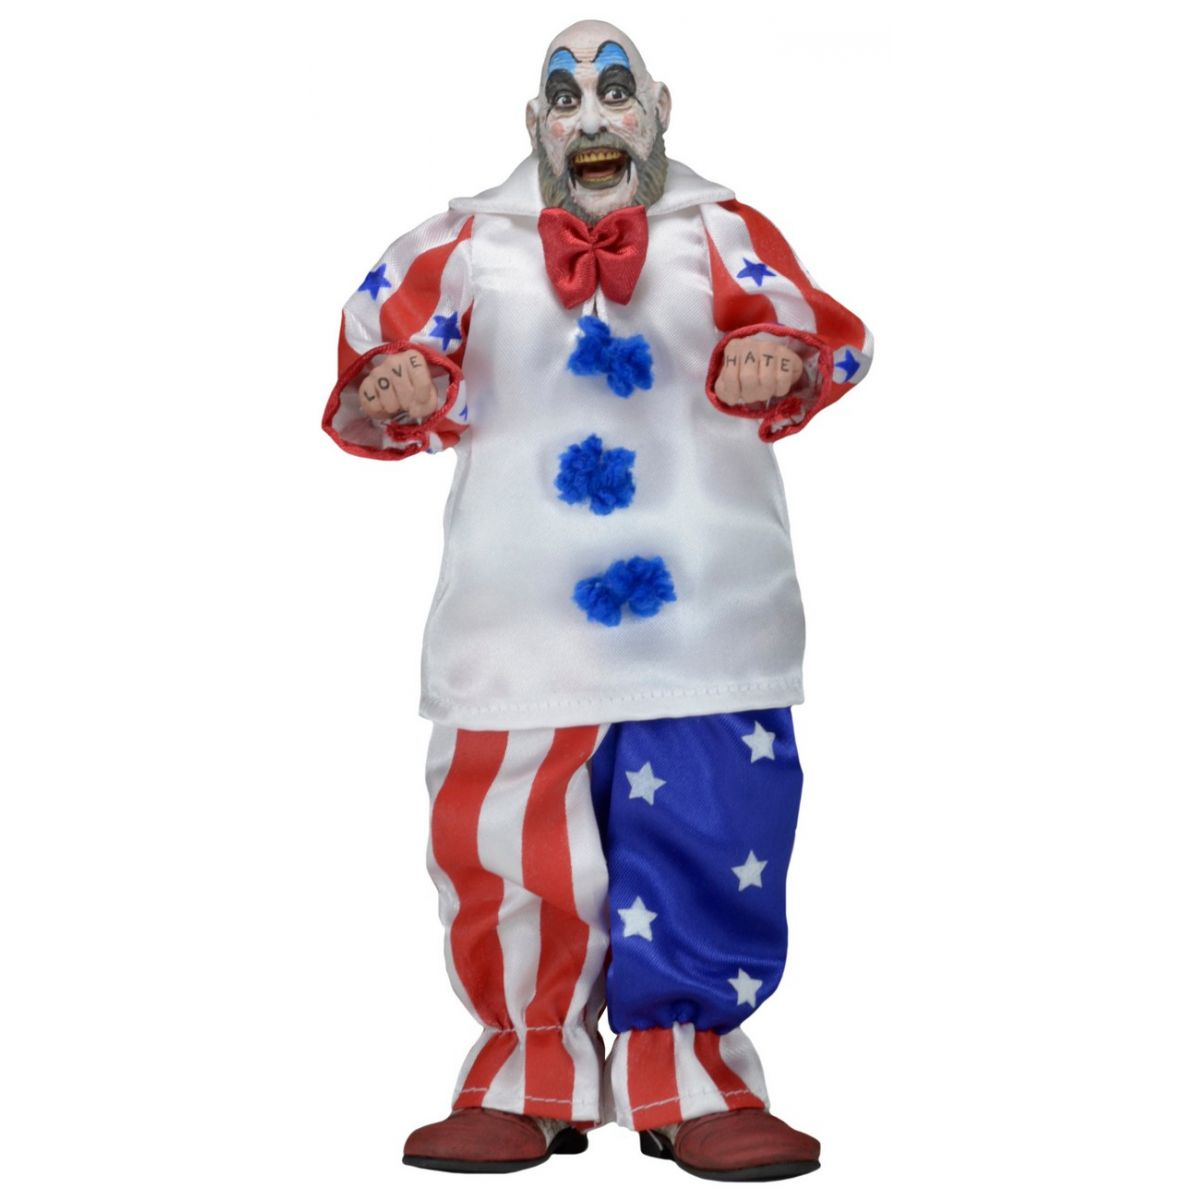 House Of 1000 Corpses Figures: Clothed Retro Action Captain Spaulding Figure - Neca